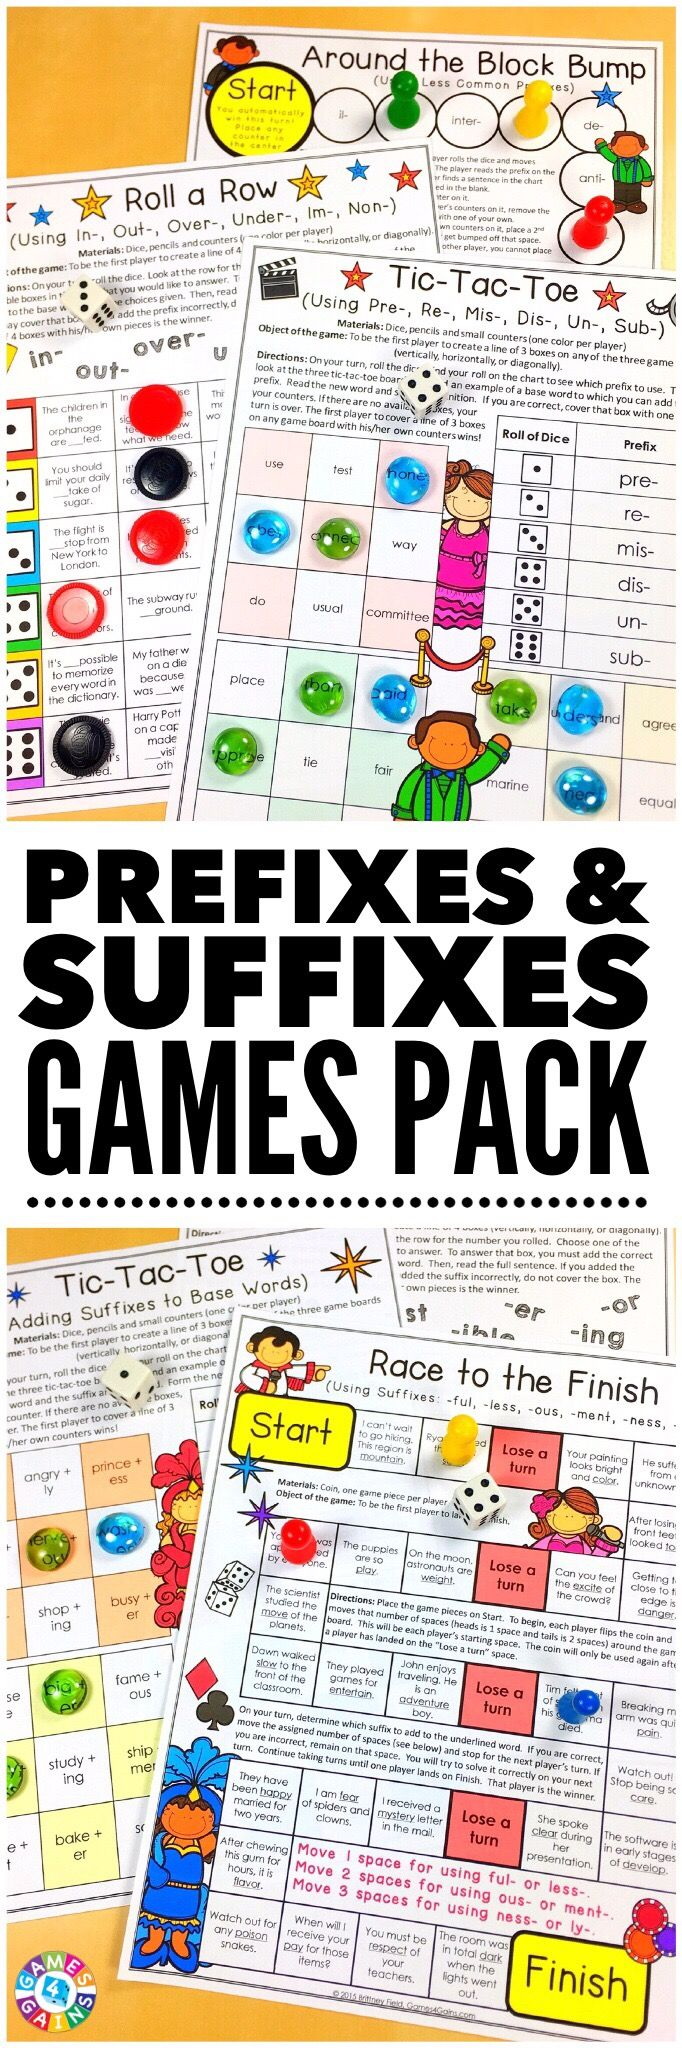 """LOVE these low-prep games! My students have so much fun playing them!"" This Prefixes and Suffixes Games Bundle contains 12 fun and engaging printable board games to help students to practice identifying, defining, and using prefixes and suffixes. These games are so simple to use and require very minimal prep. They are perfect to use in literacy centers or as extension activities when students complete their work!"